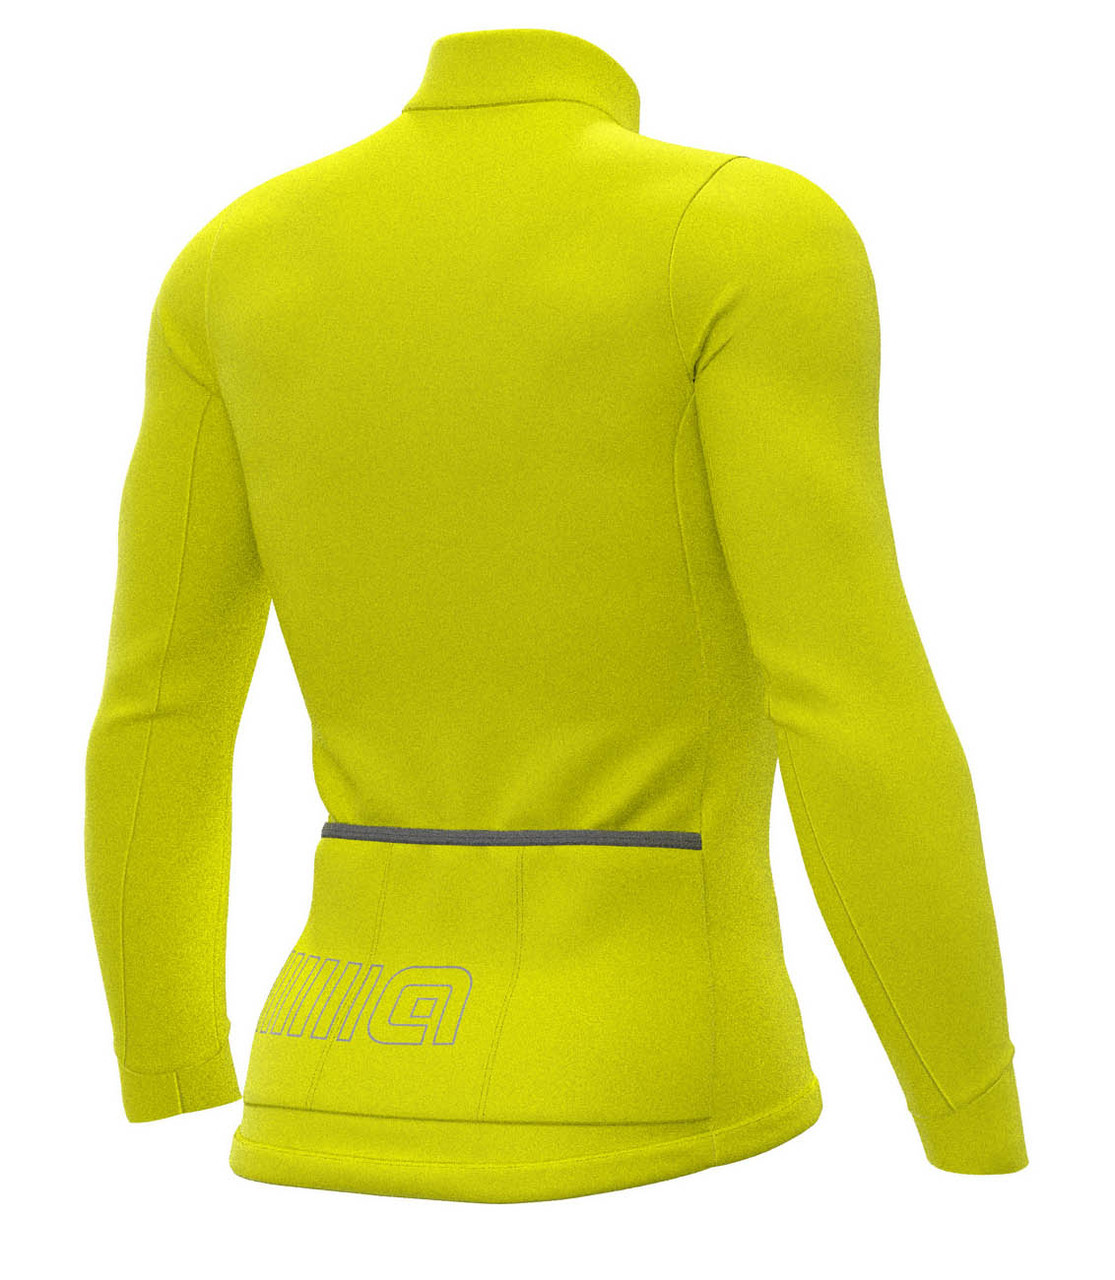 ALE' Color Block Solid Yellow Long Sleeve Jersey Rear